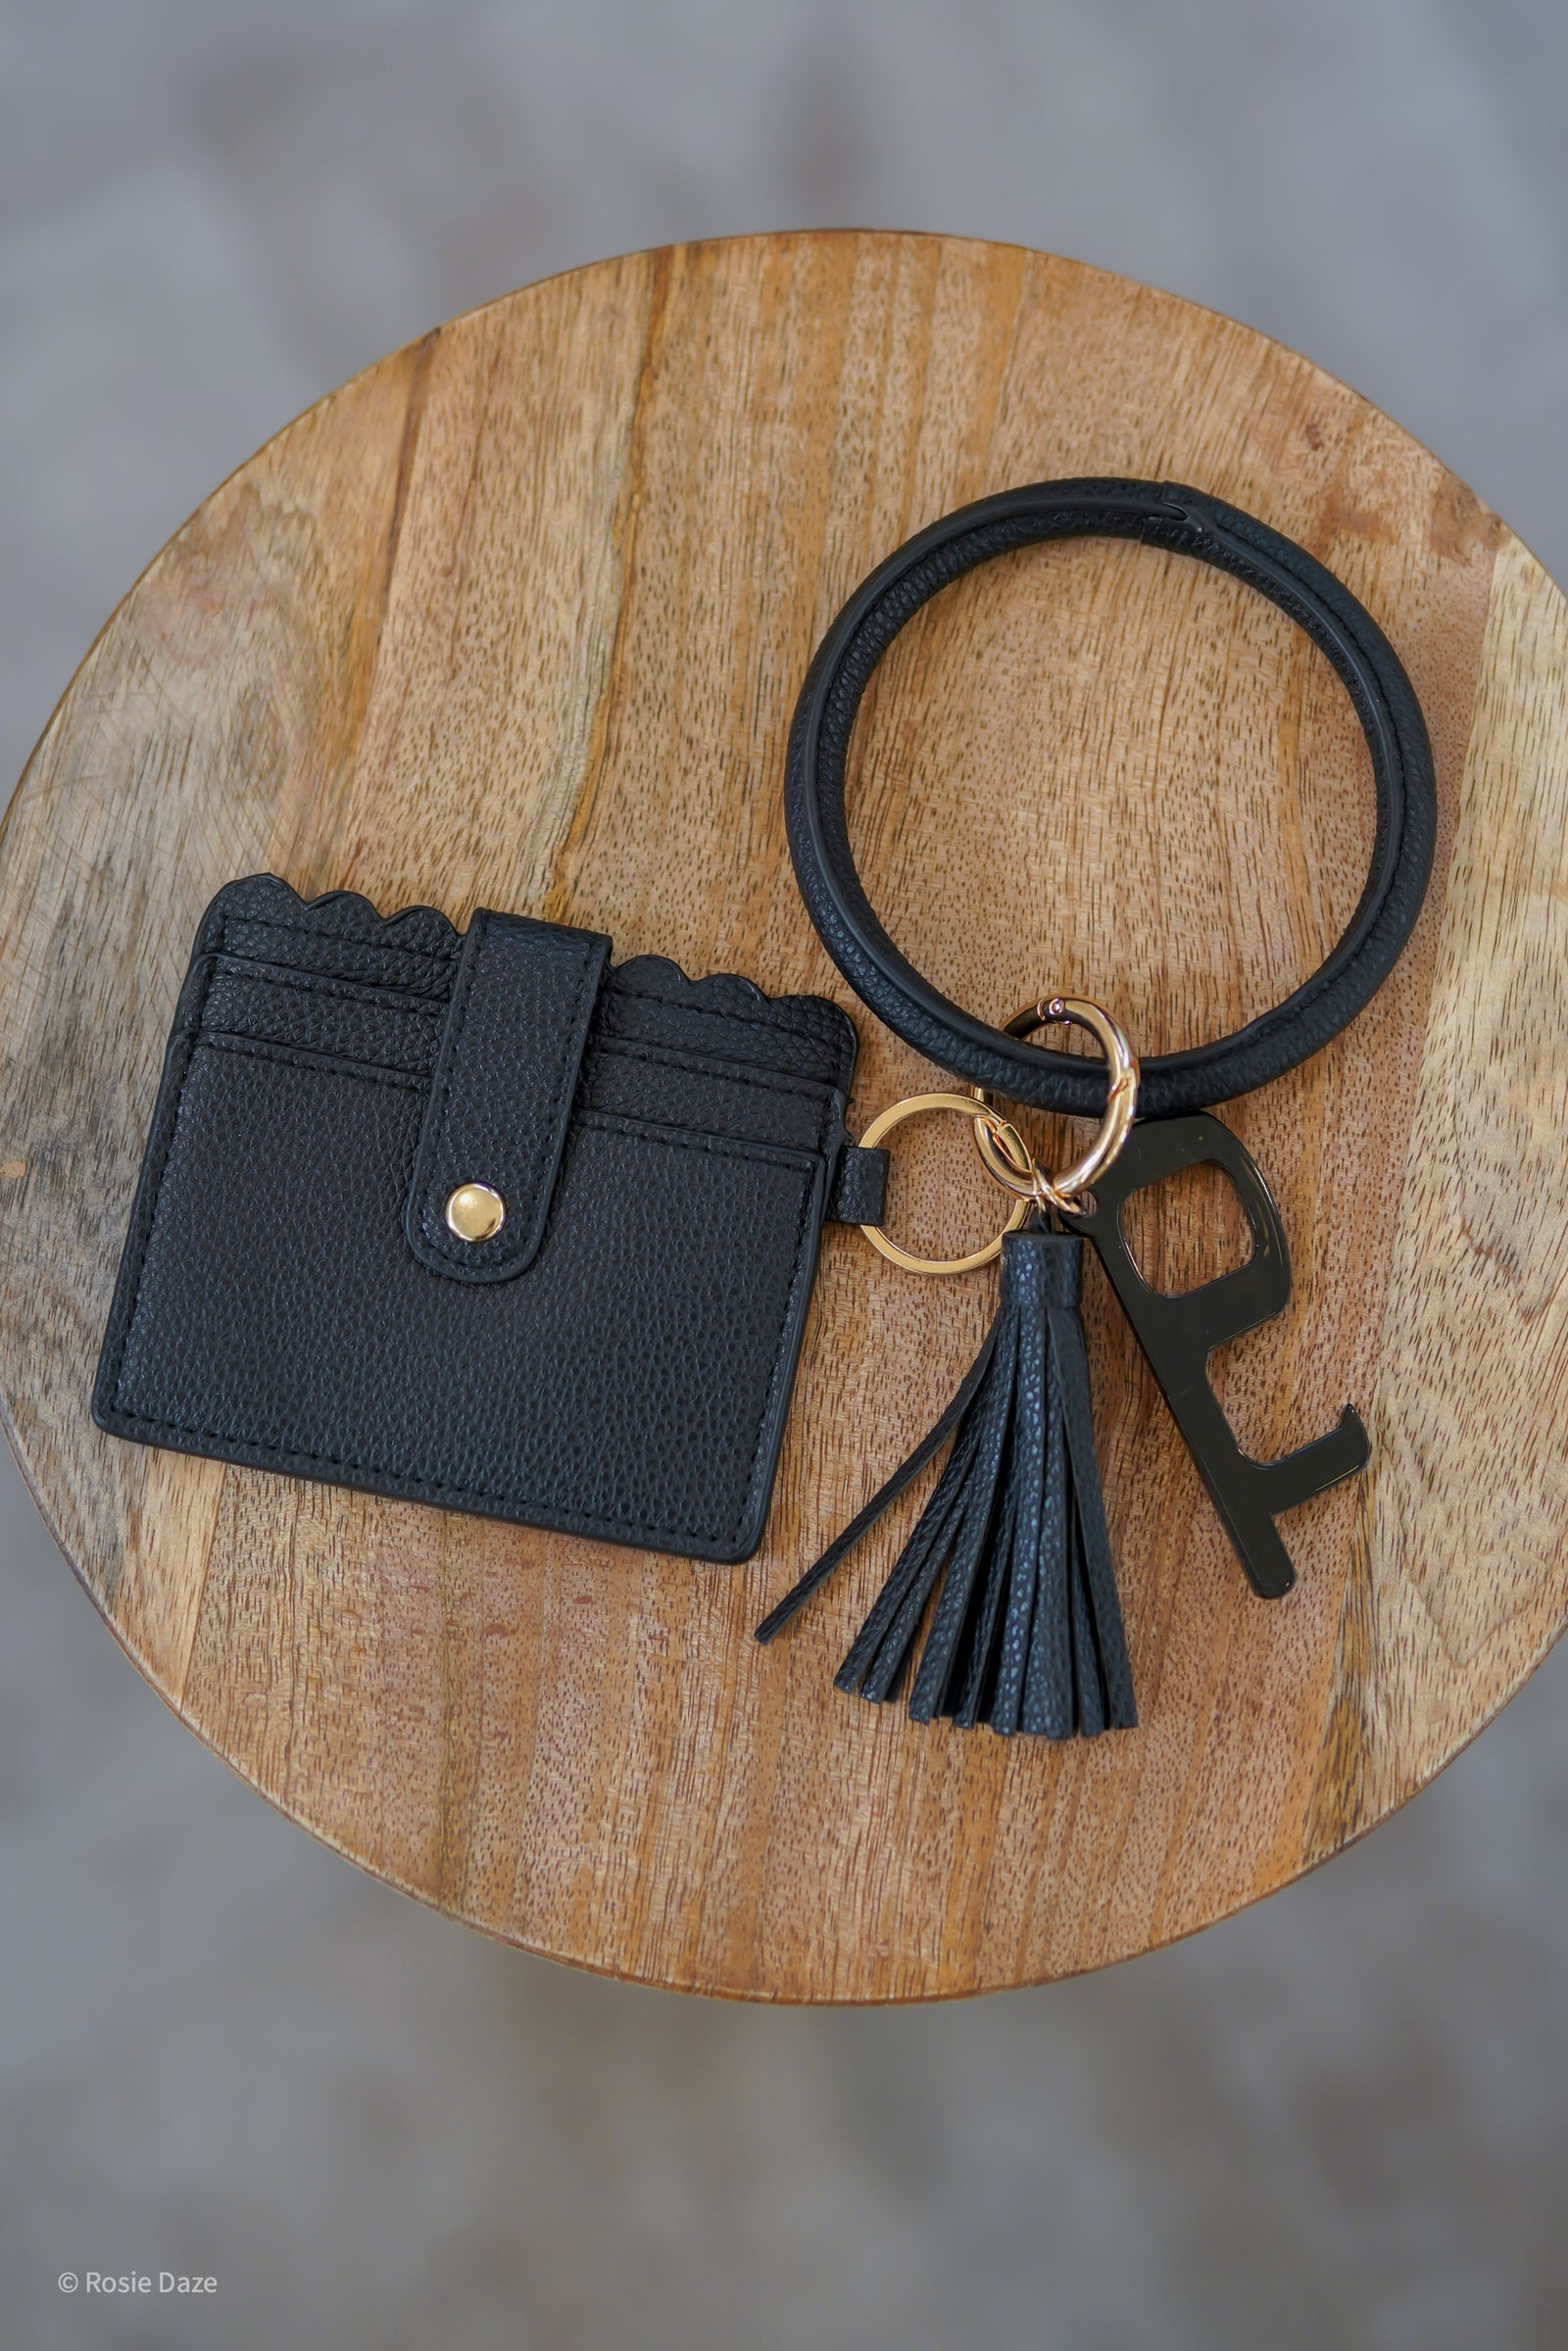 Don't Lose it Wristlet 2.0 - Black